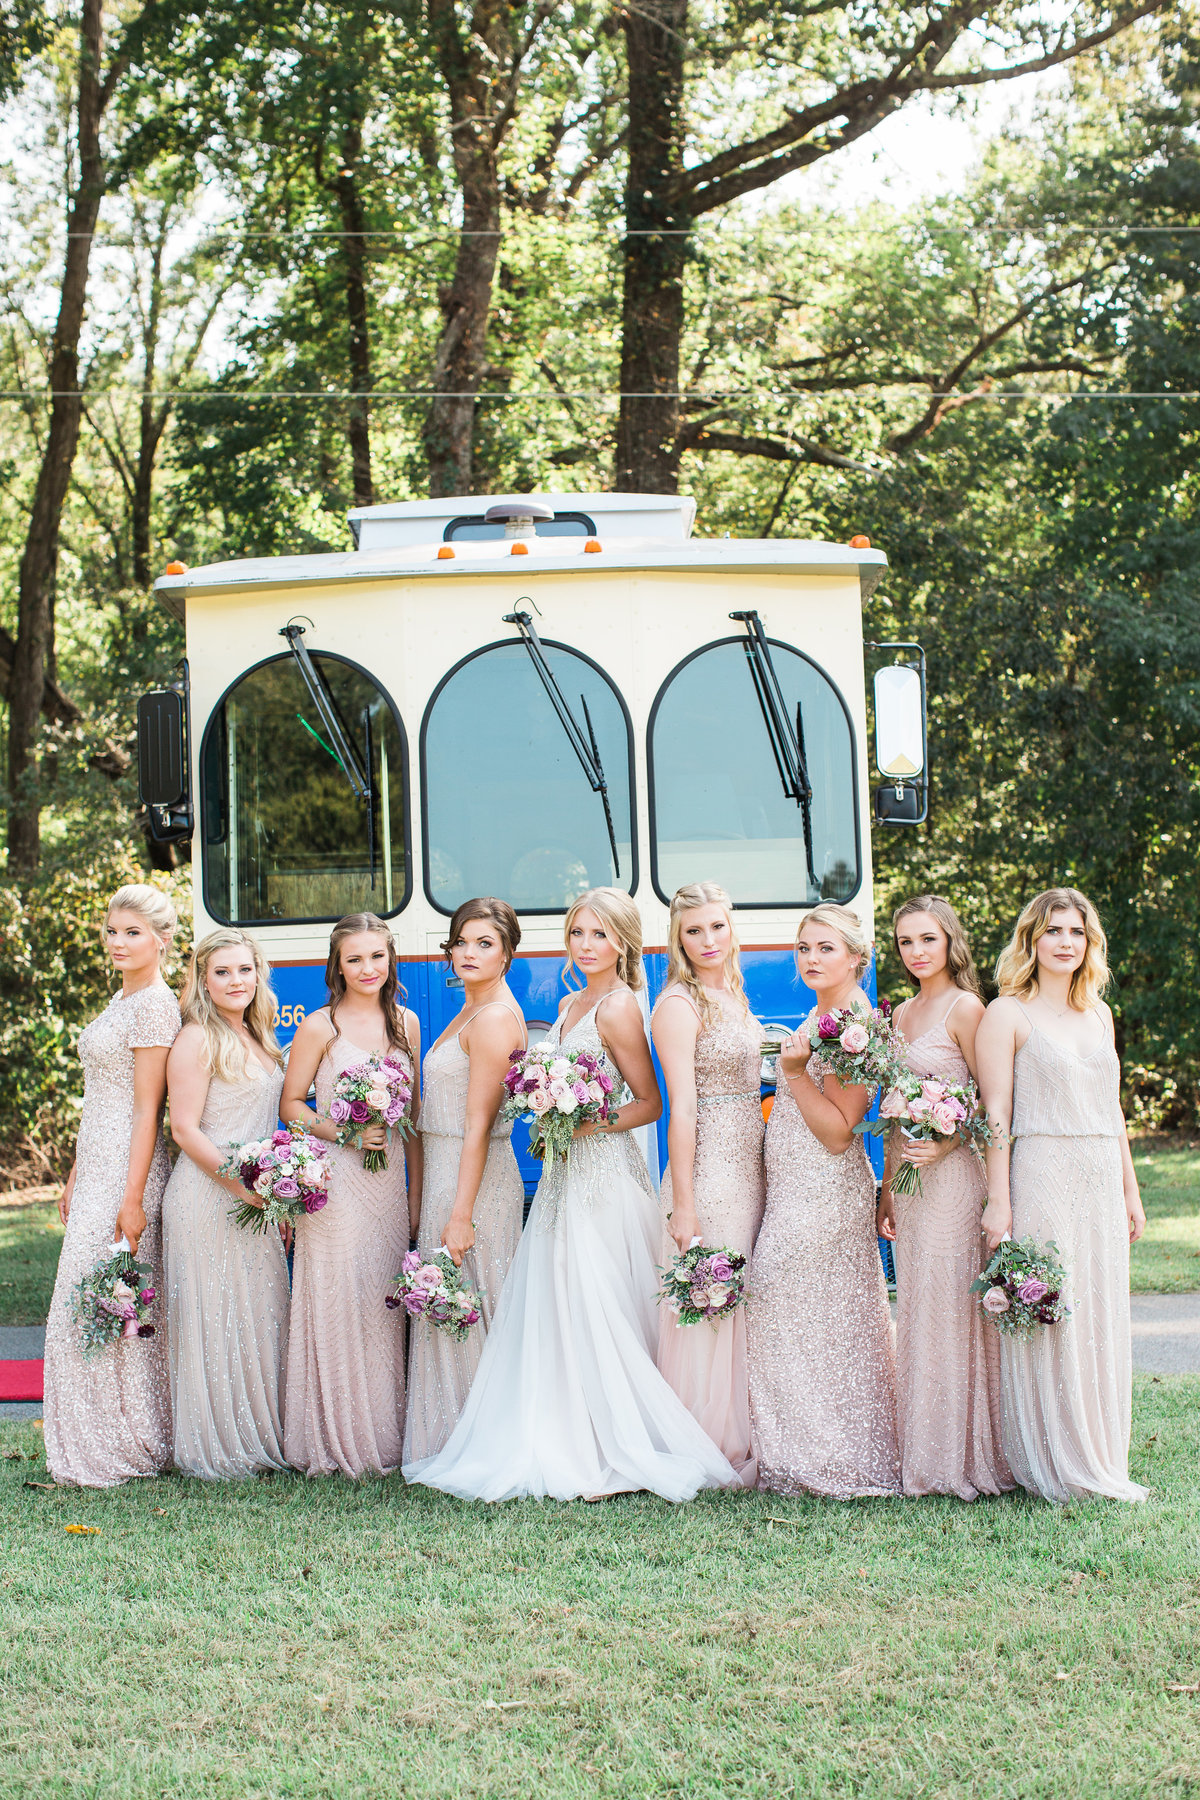 Eden & Will Wedding_Lindsay Ott Photography_Mississippi Wedding Photographer95